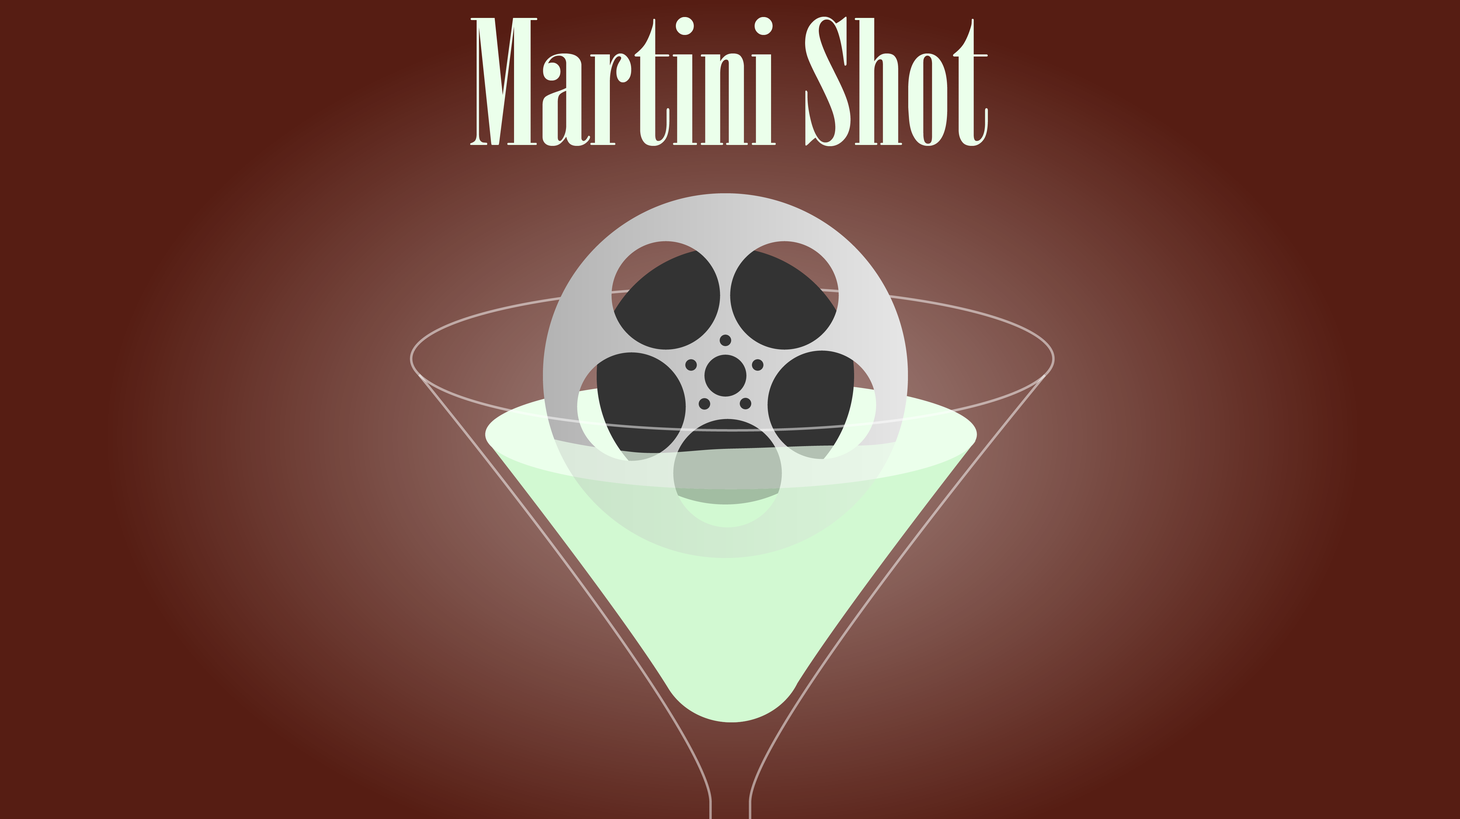 On today's Martini Shot I give two friends totally different and contradictory advice, and I still think I was right. They disagree.